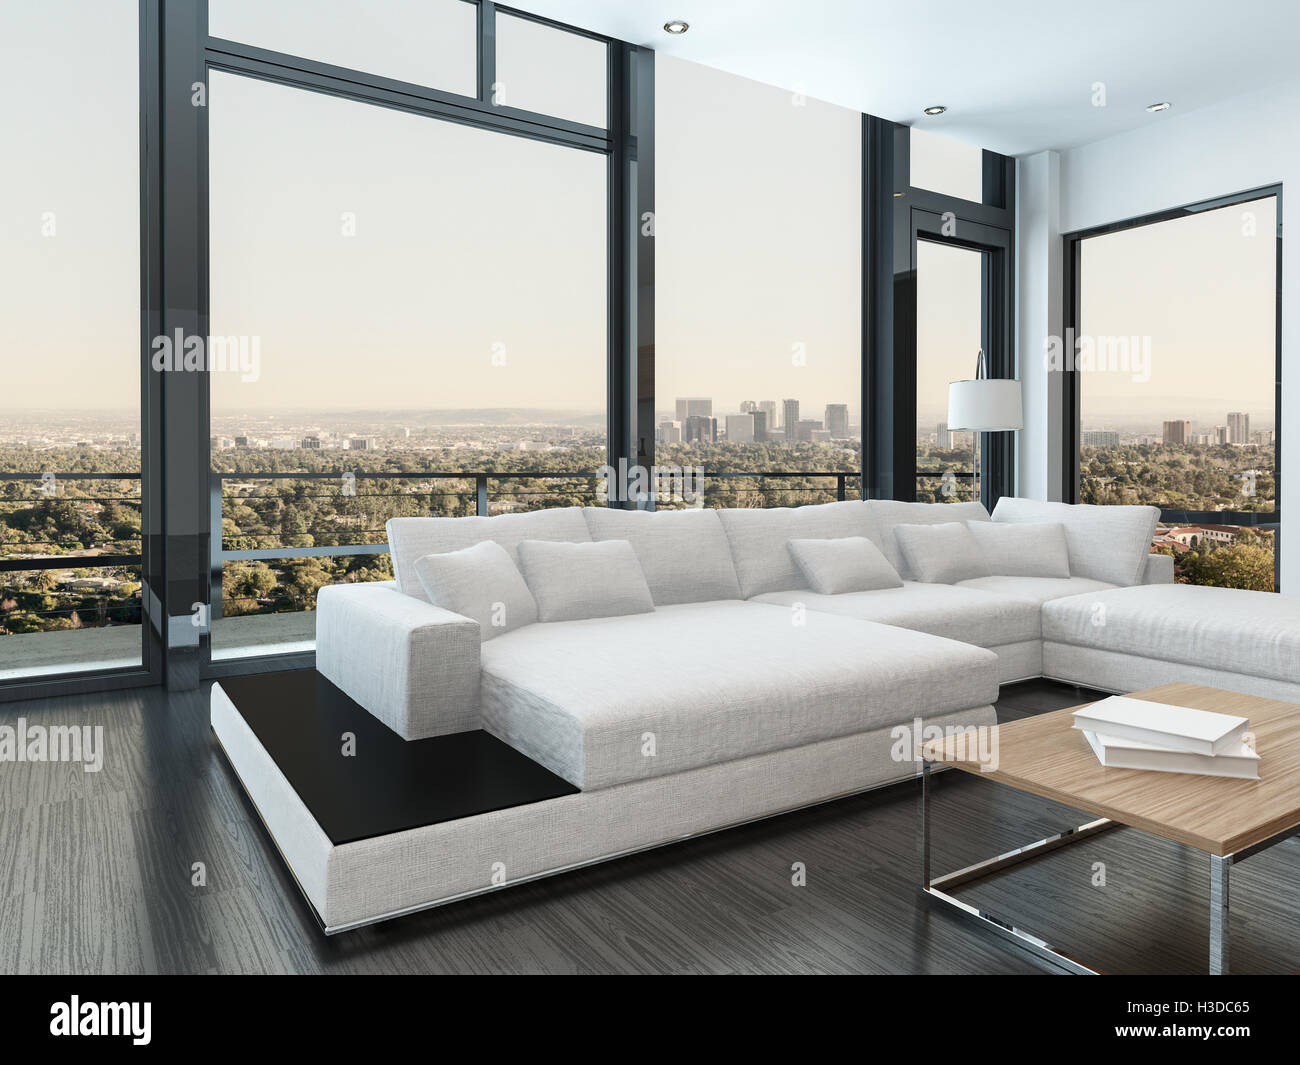 Large Comfortable White Modern Modular Lounge Suite In A Spacious Living Room Interior With Floor